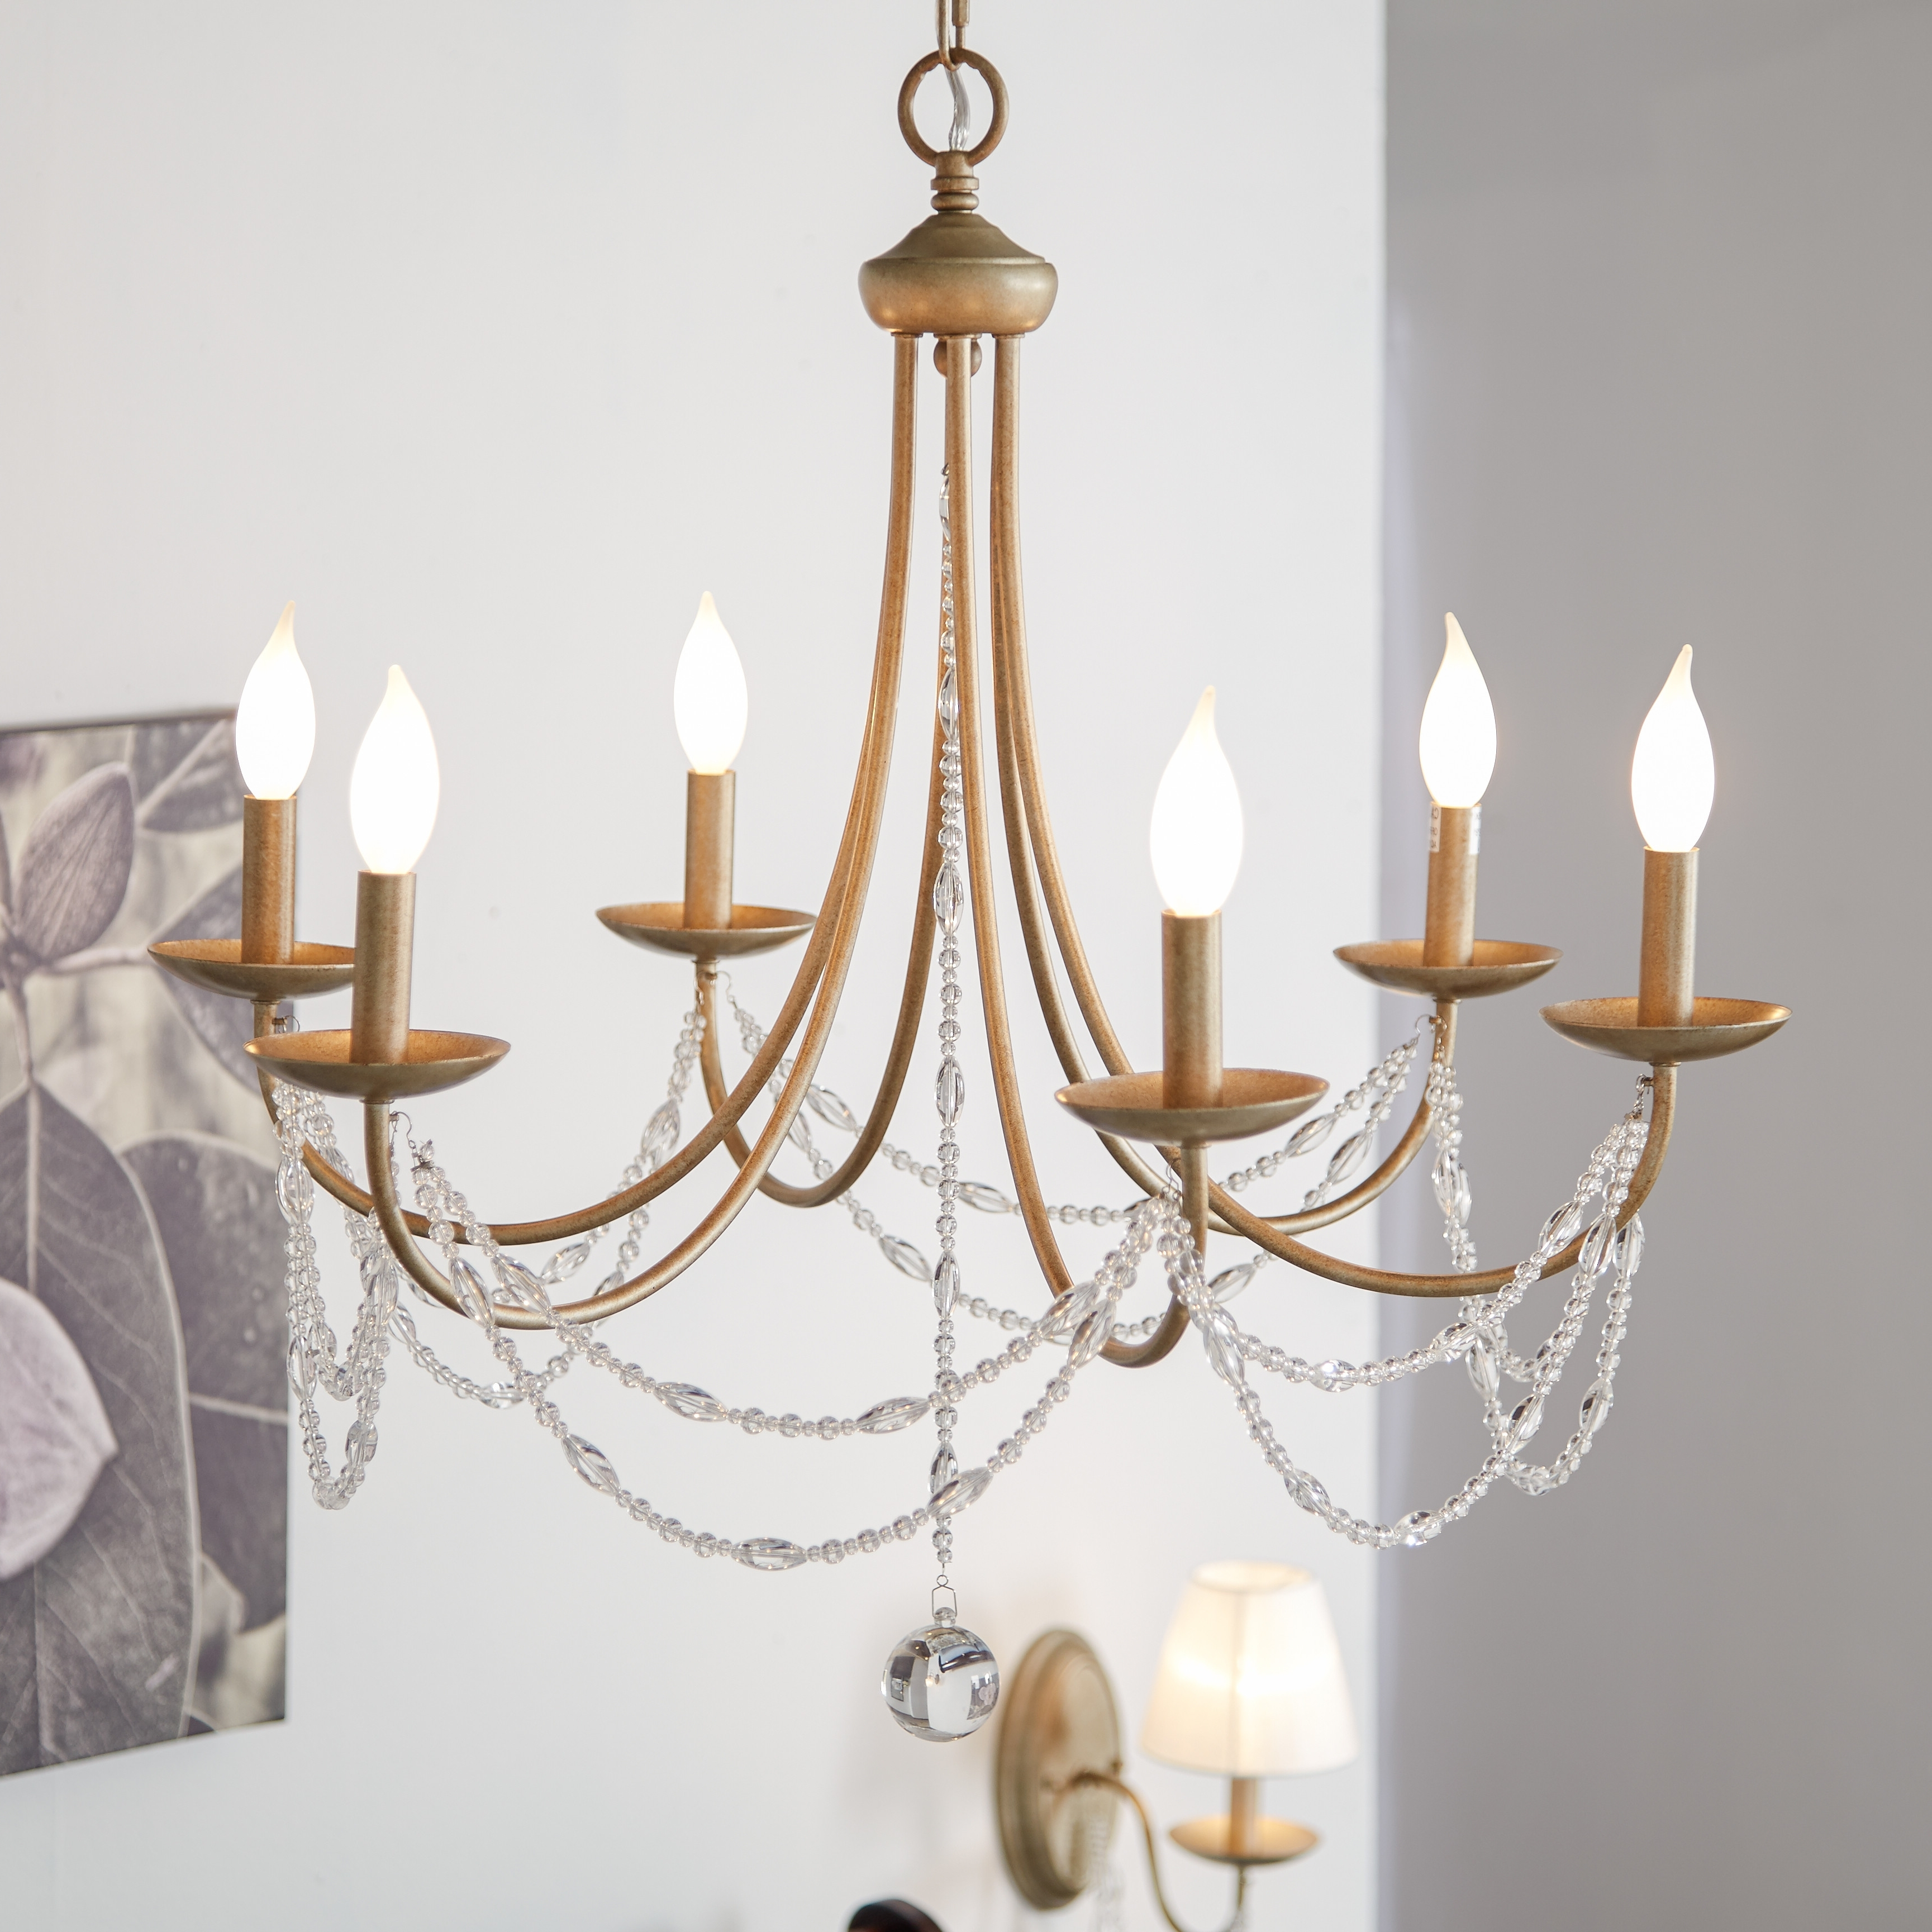 Hanging Candelabra Chandeliers For Well Known Lighting: Wonderful Candle Chandelier Non Electric For Modern Lights (View 12 of 20)